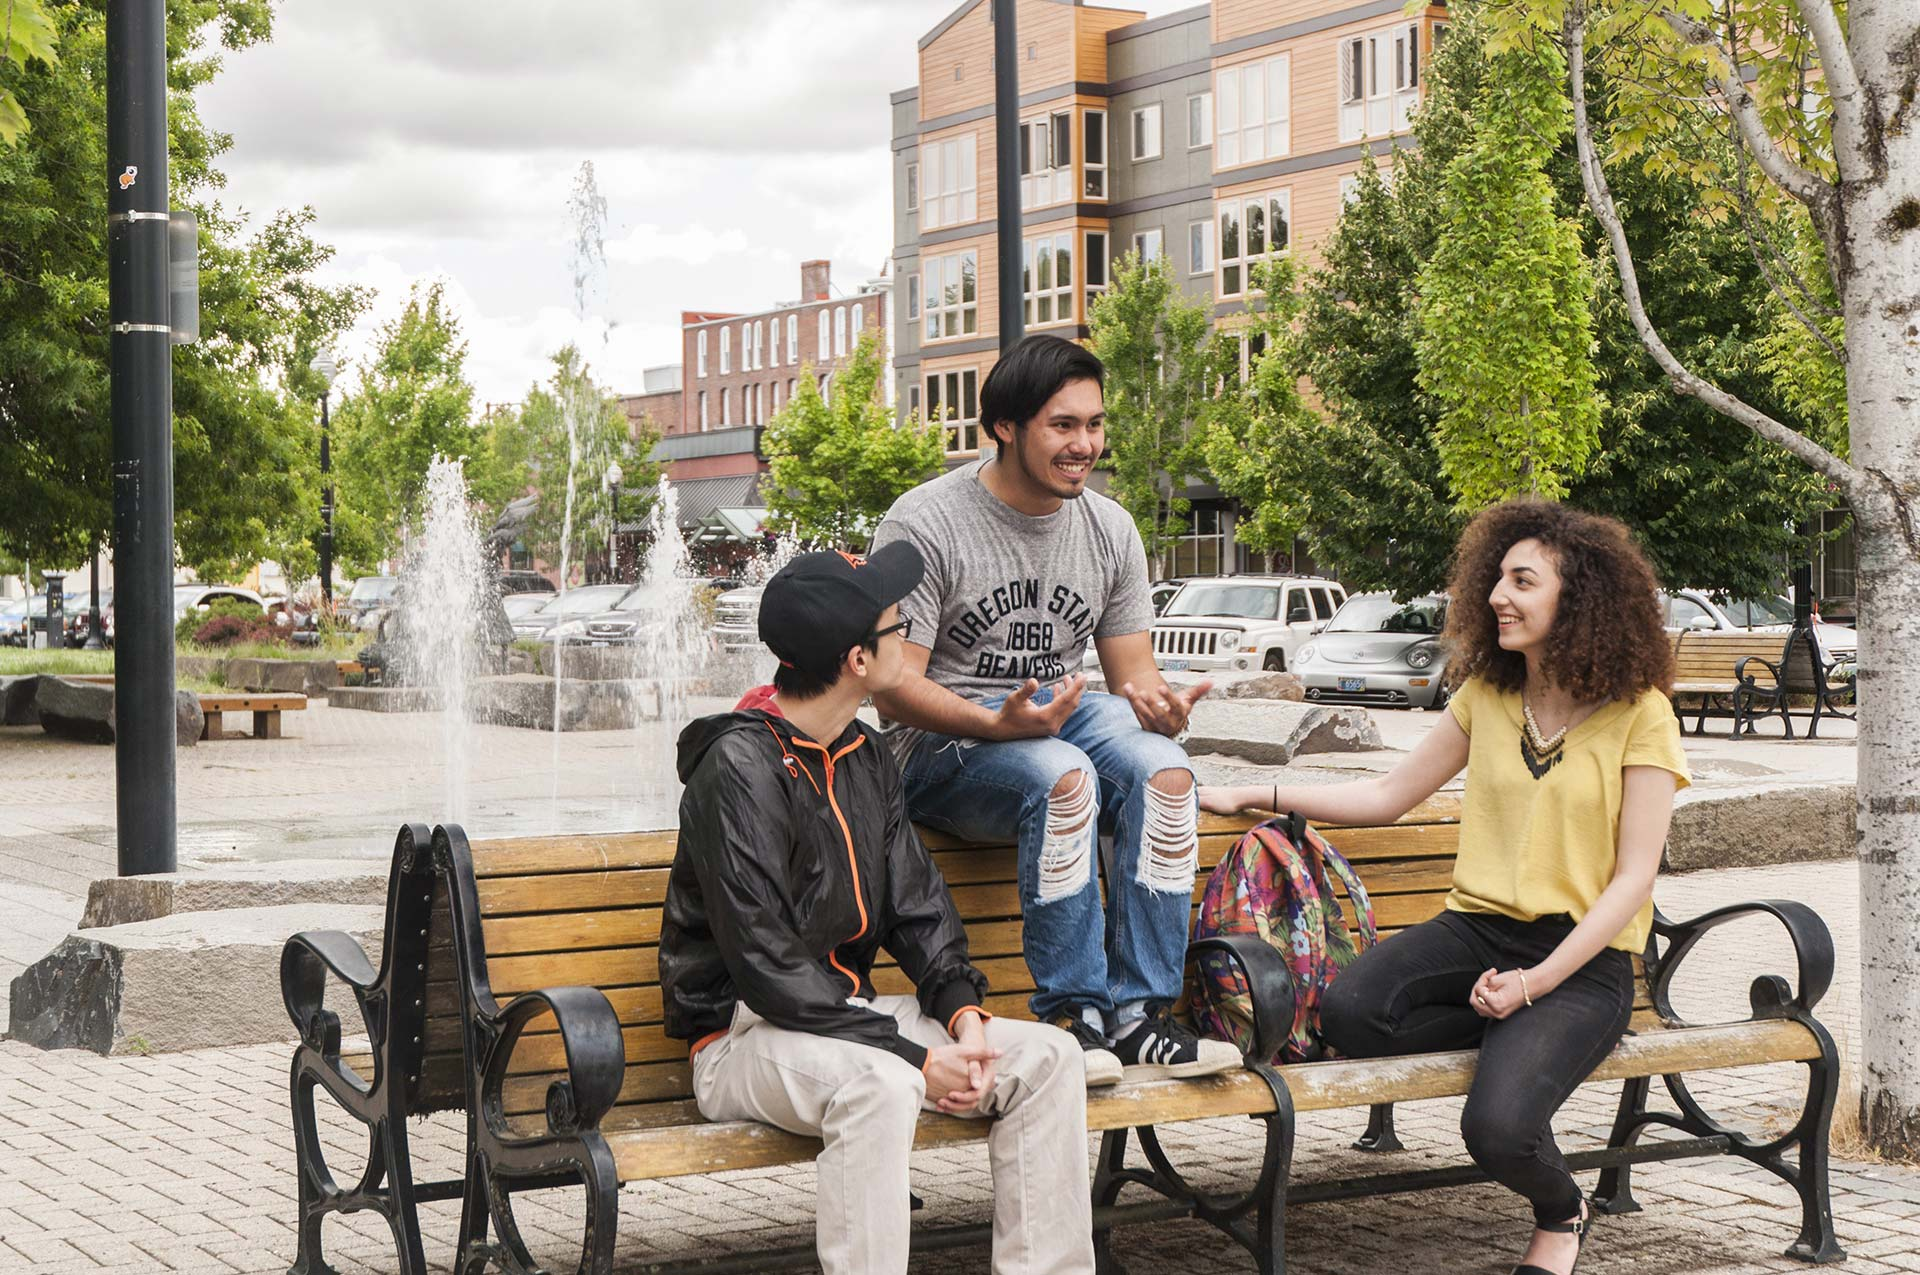 International students downtown enjoying the day at the waterfront park in Corvallis, Oregon